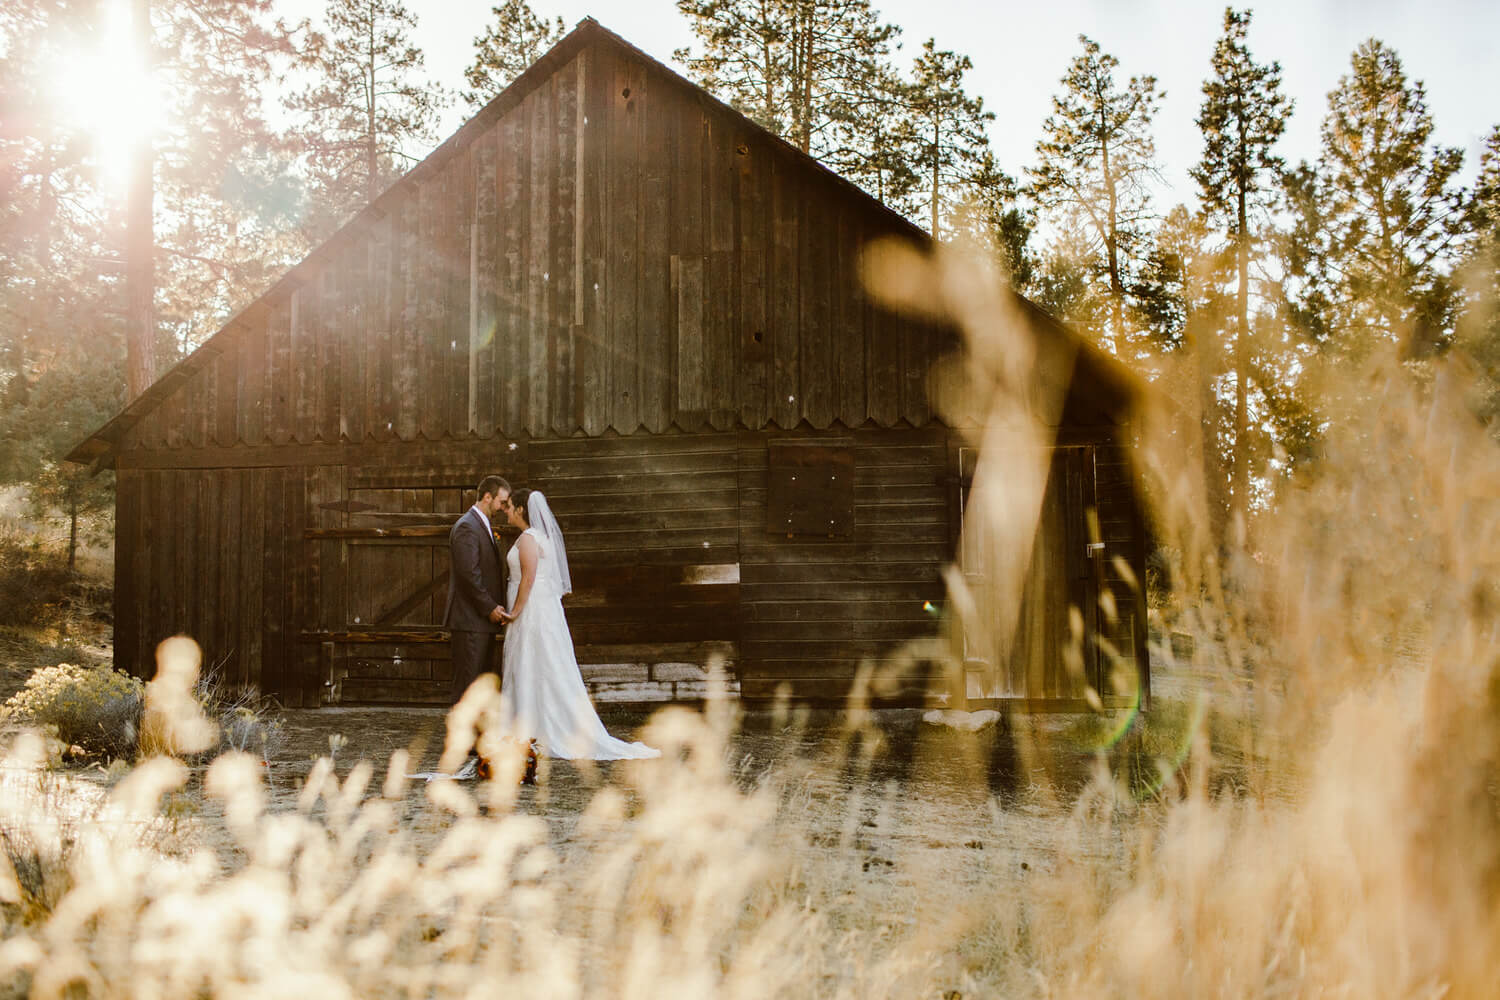 Evening light at Hollinshead Park. Bride and groom stand in front of barn.